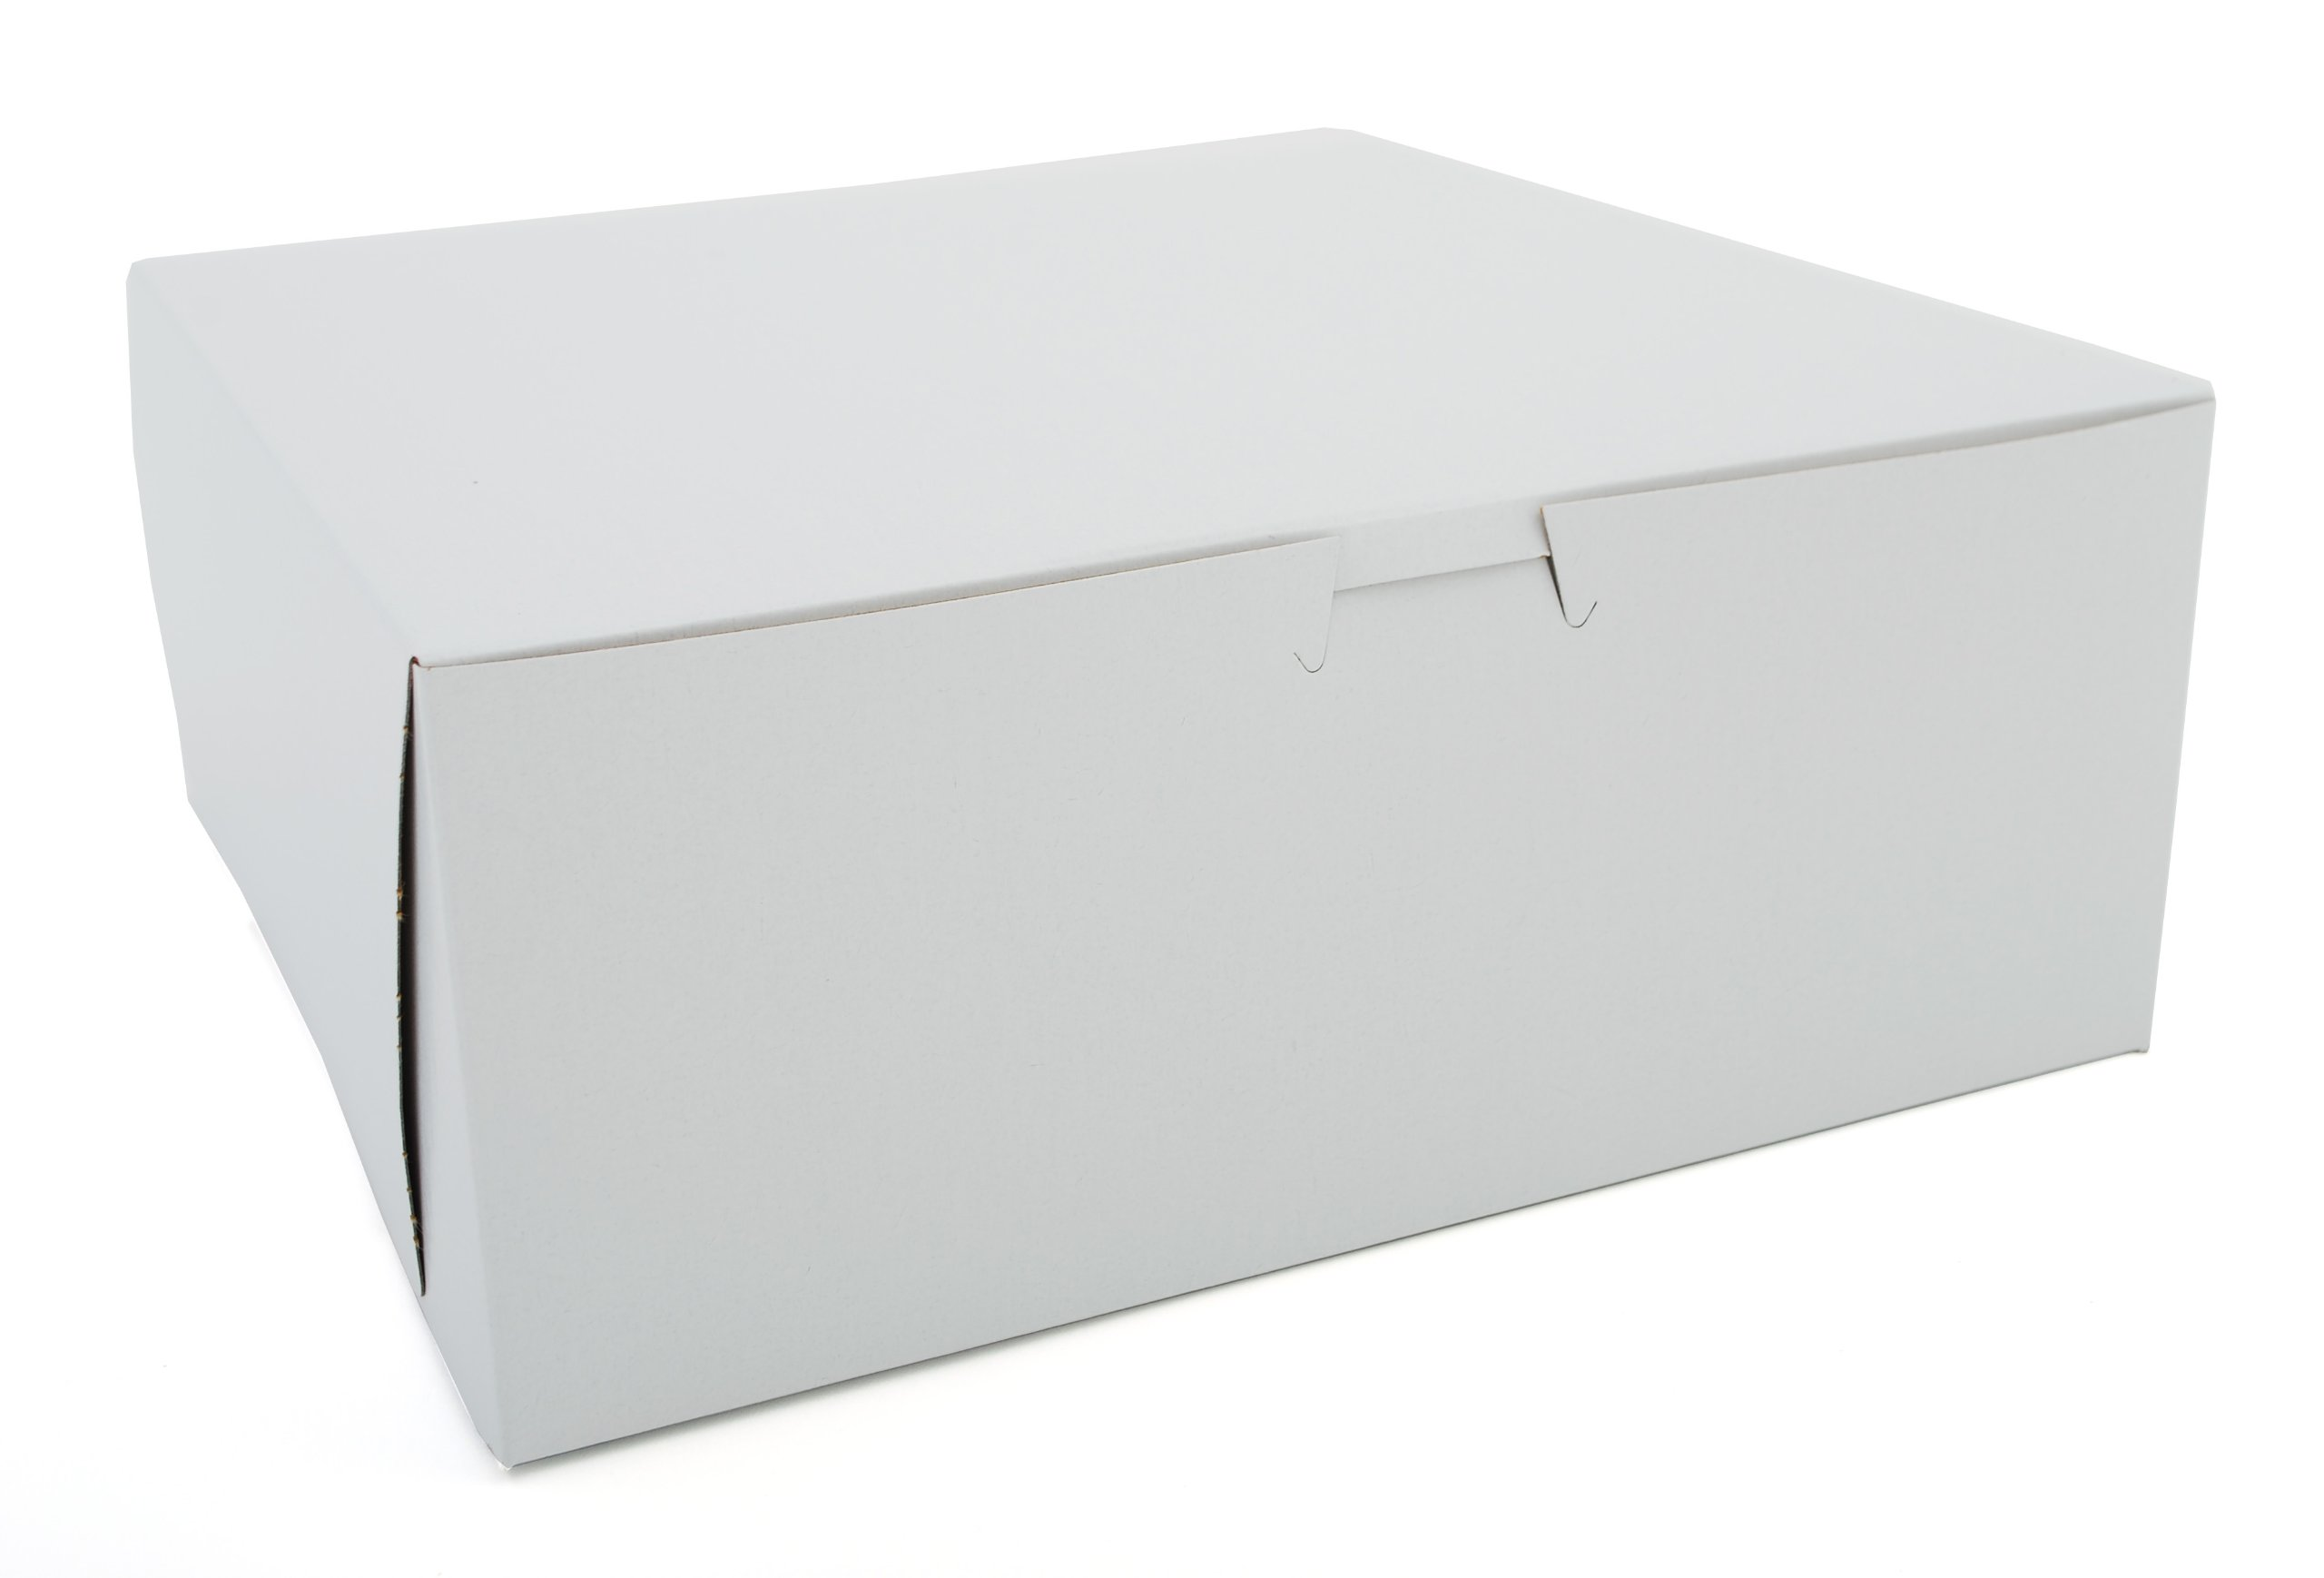 Southern Champion Tray 0973 Premium Clay-Coated Kraft Paperboard White Non-Window Lock Corner Bakery Box, 10'' Length x 10'' Width x 4'' Height (Case of 100)